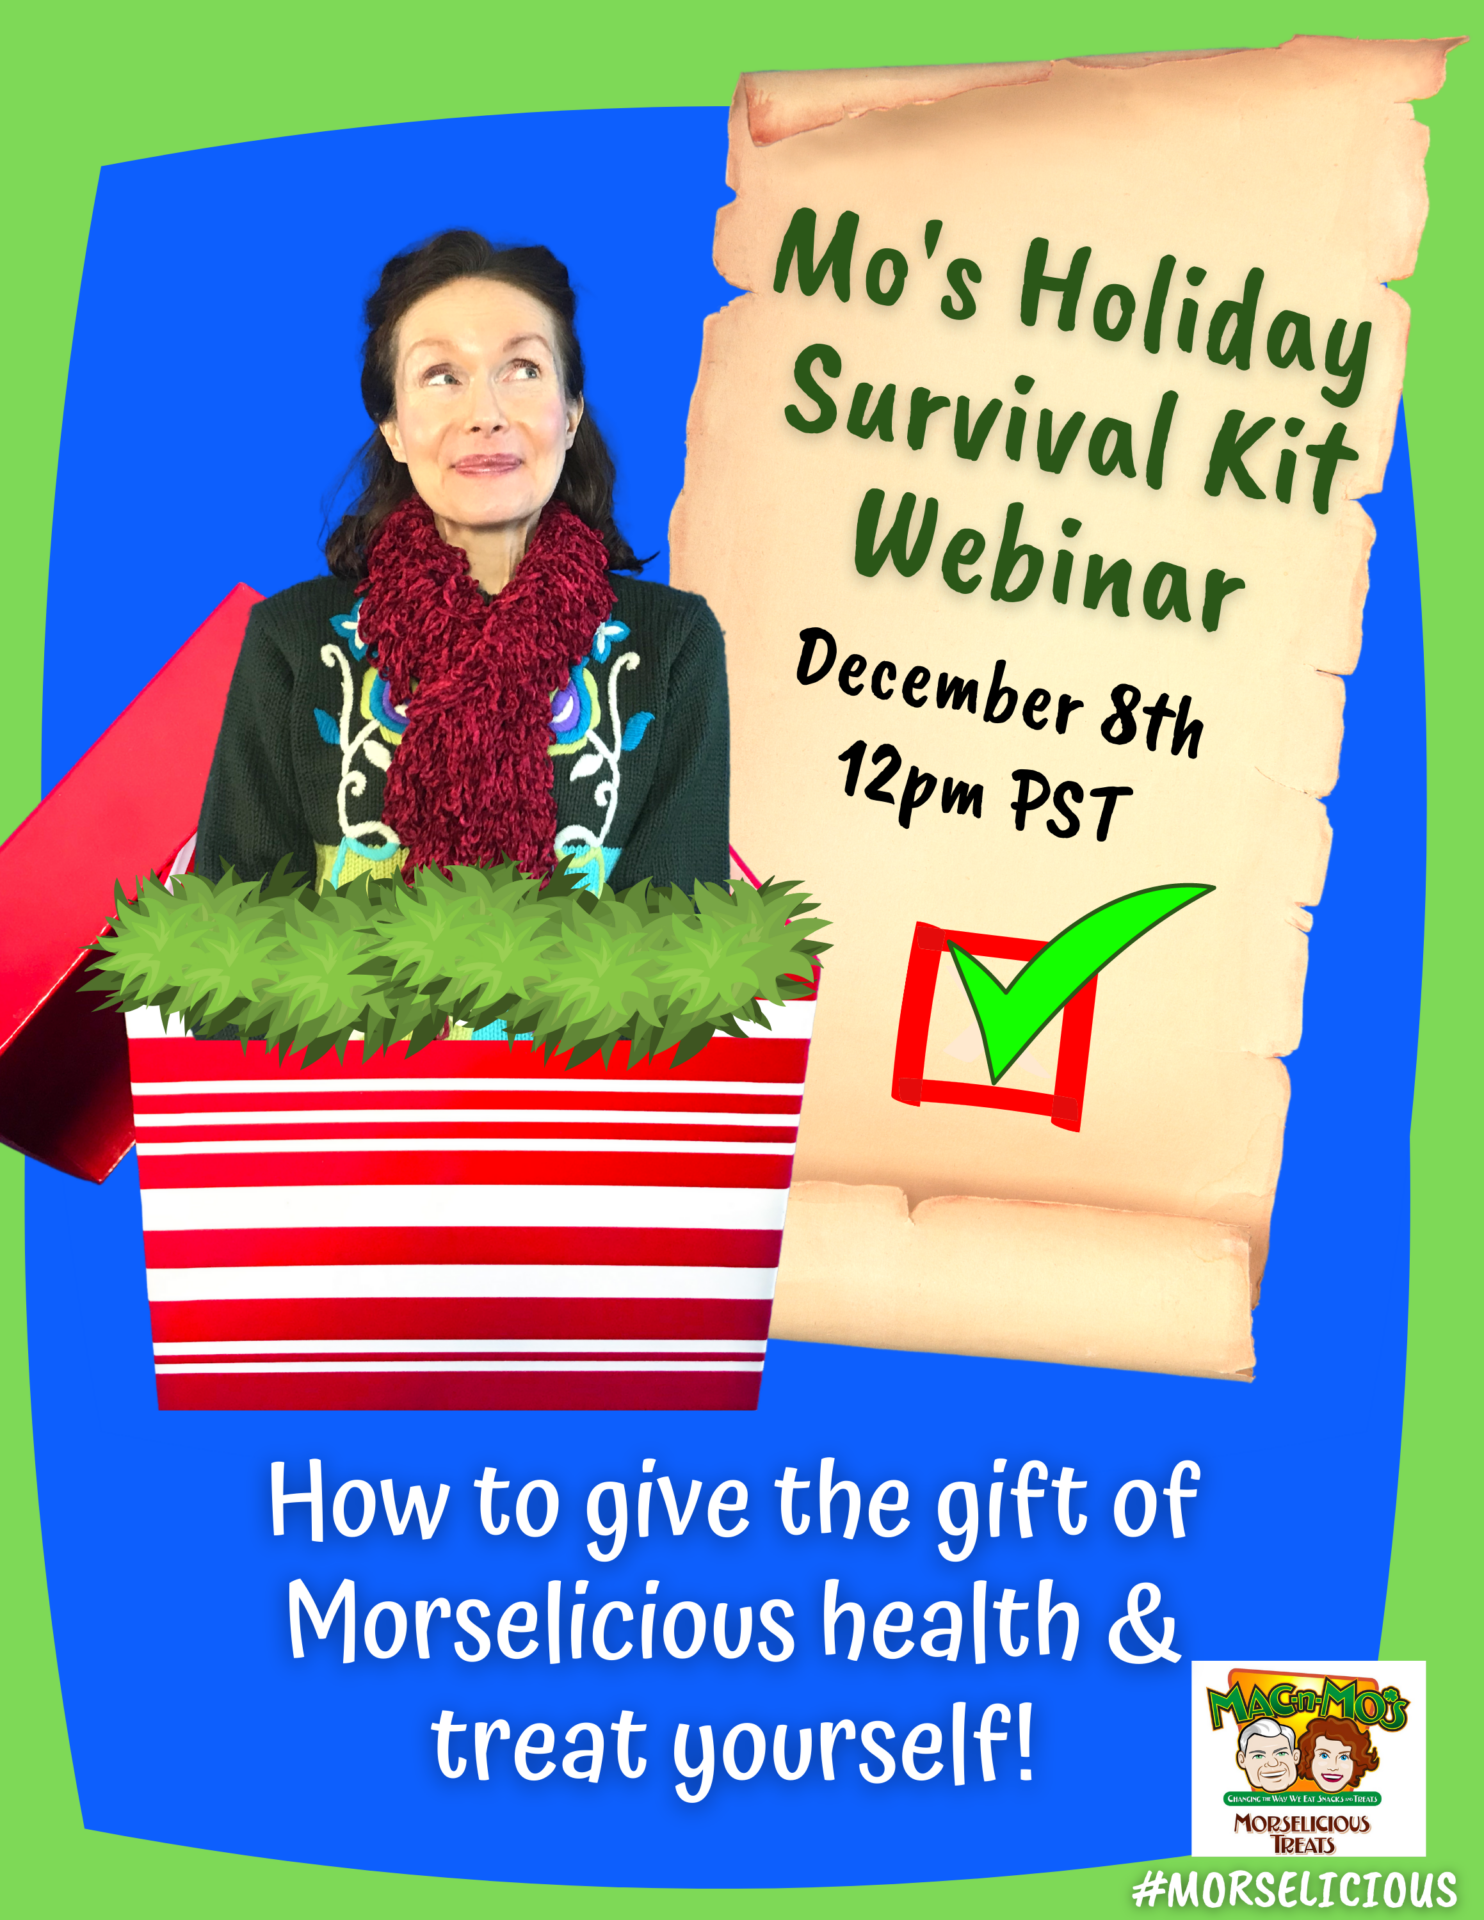 Mo's Holiday Survival Kit Webinar. Photo of Mo inside of a red and white striped gift box.